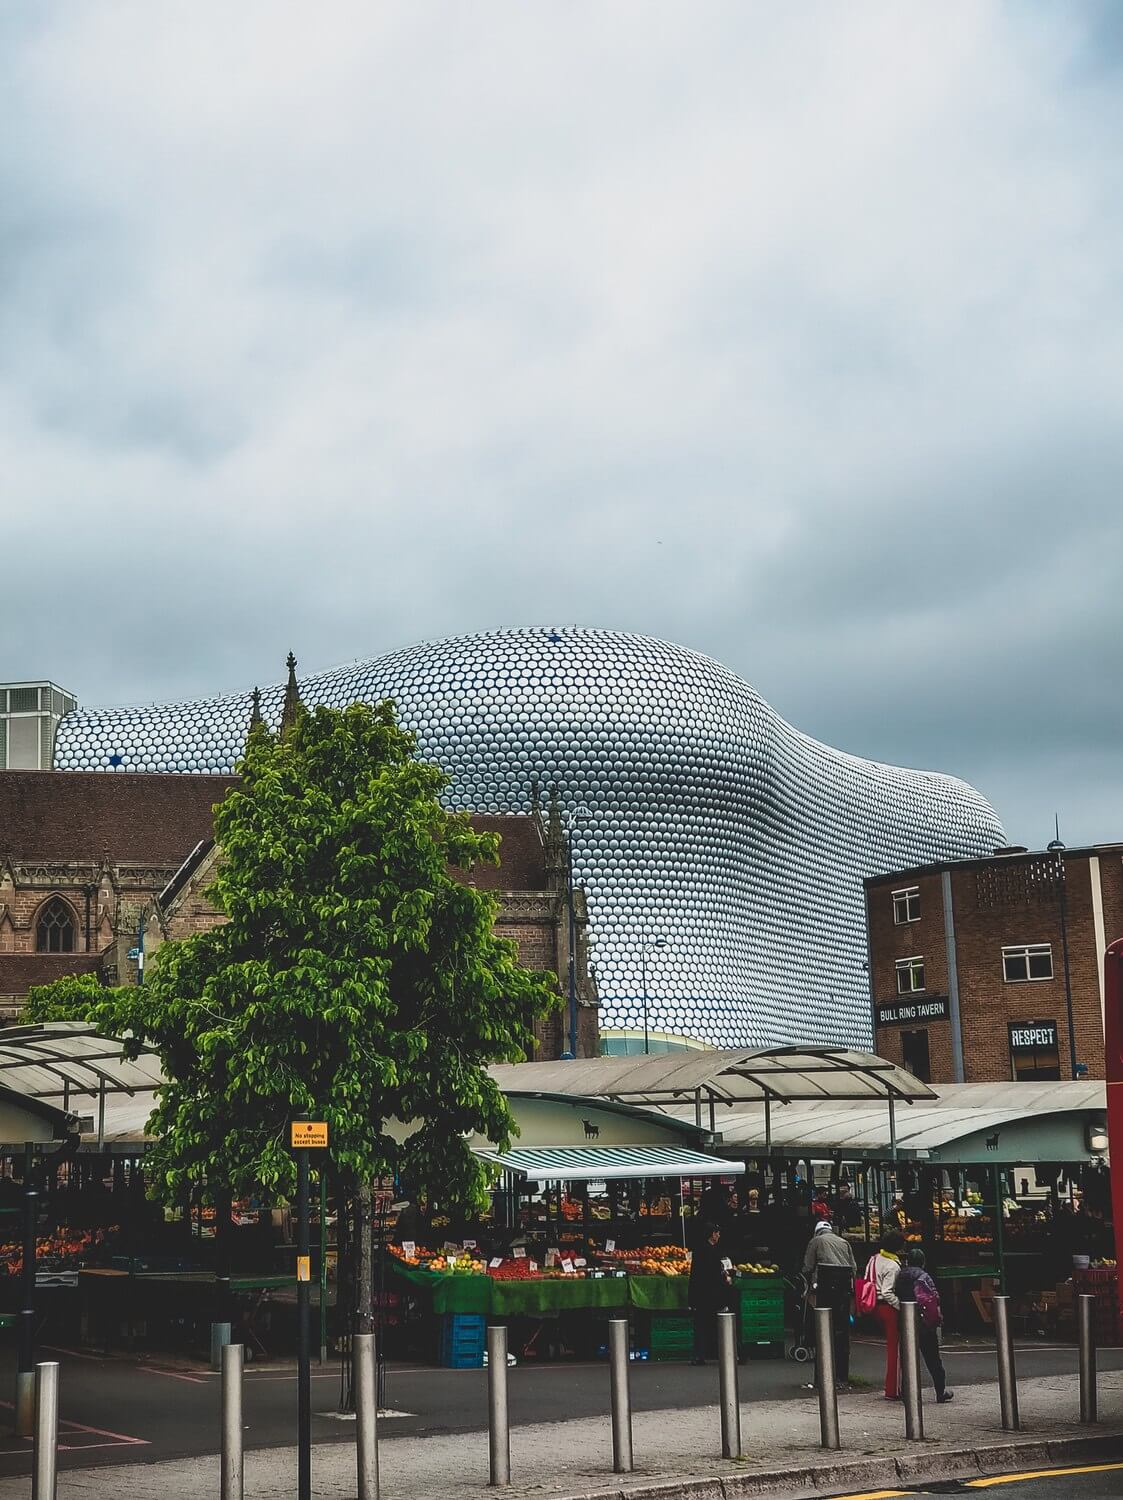 Looking through a market to the bullring building.